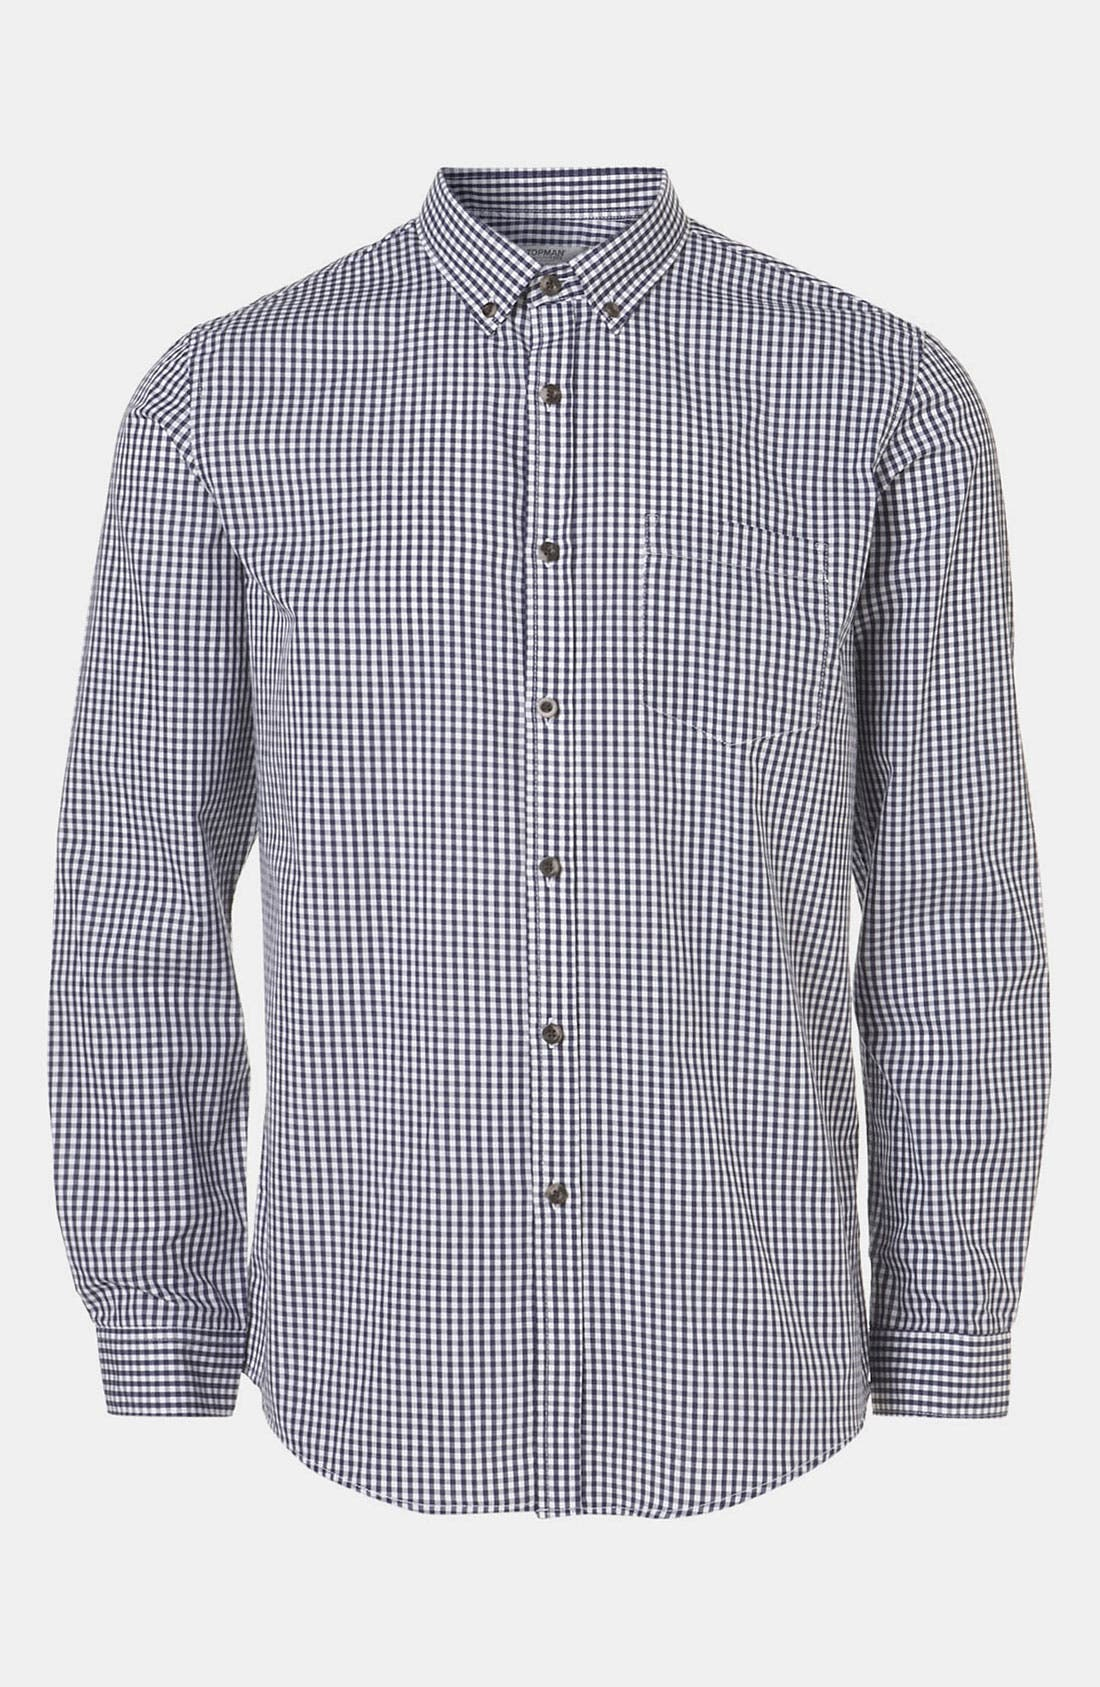 Main Image - Topman Extra Trim Gingham Check Shirt